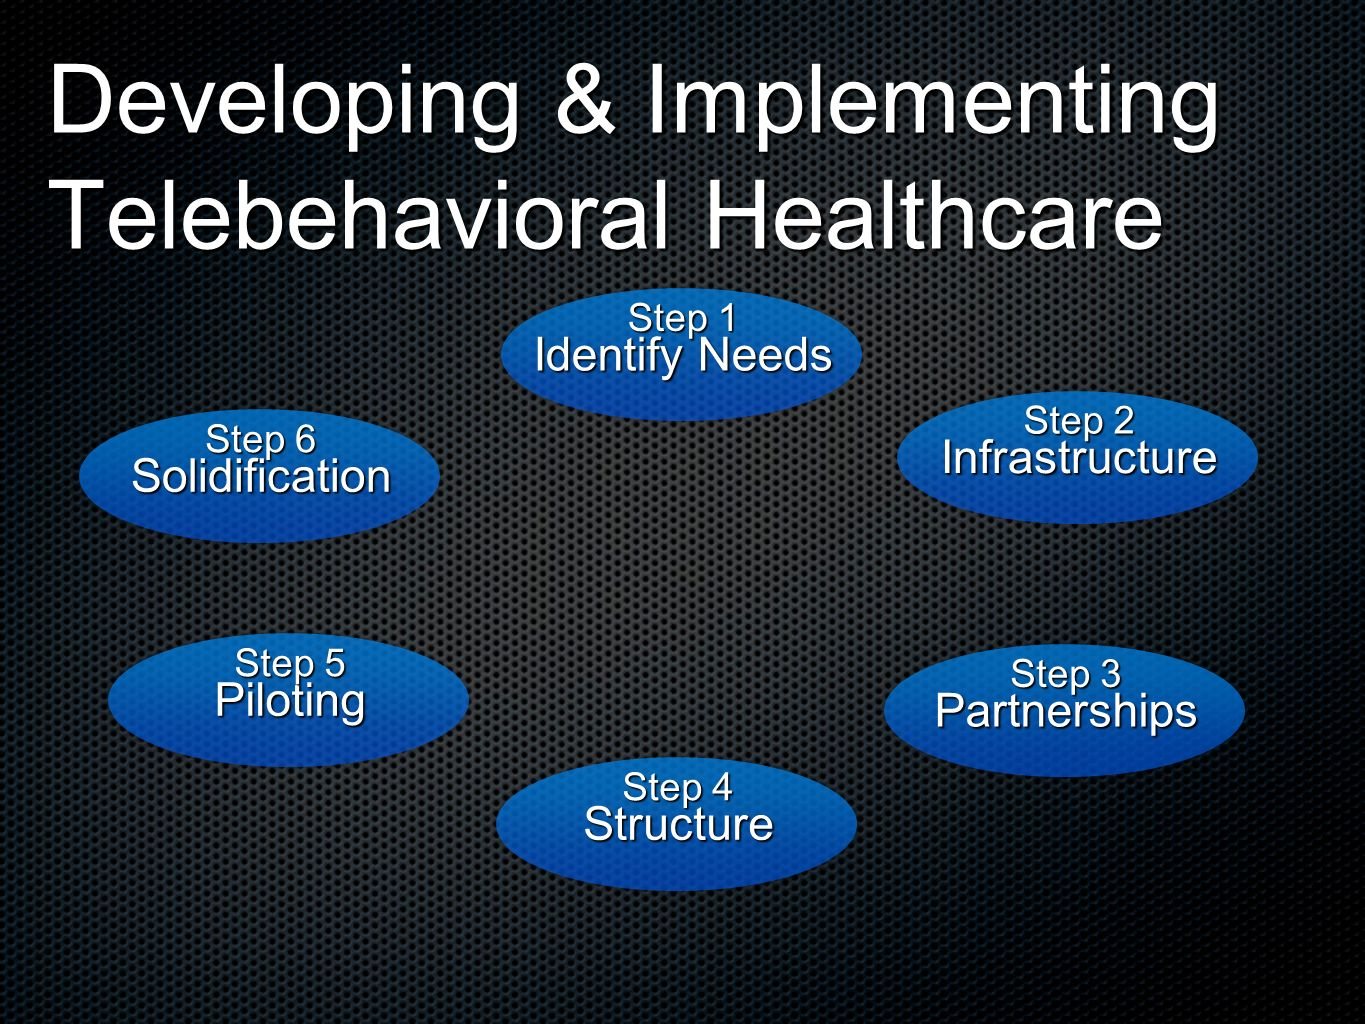 Developing & Implementing Telebehavioral Healthcare Identify Needs Step 1 Infrastructure Step 2 Partnerships Step 3 Structure Step 4 Piloting Step 5 Solidification Step 6